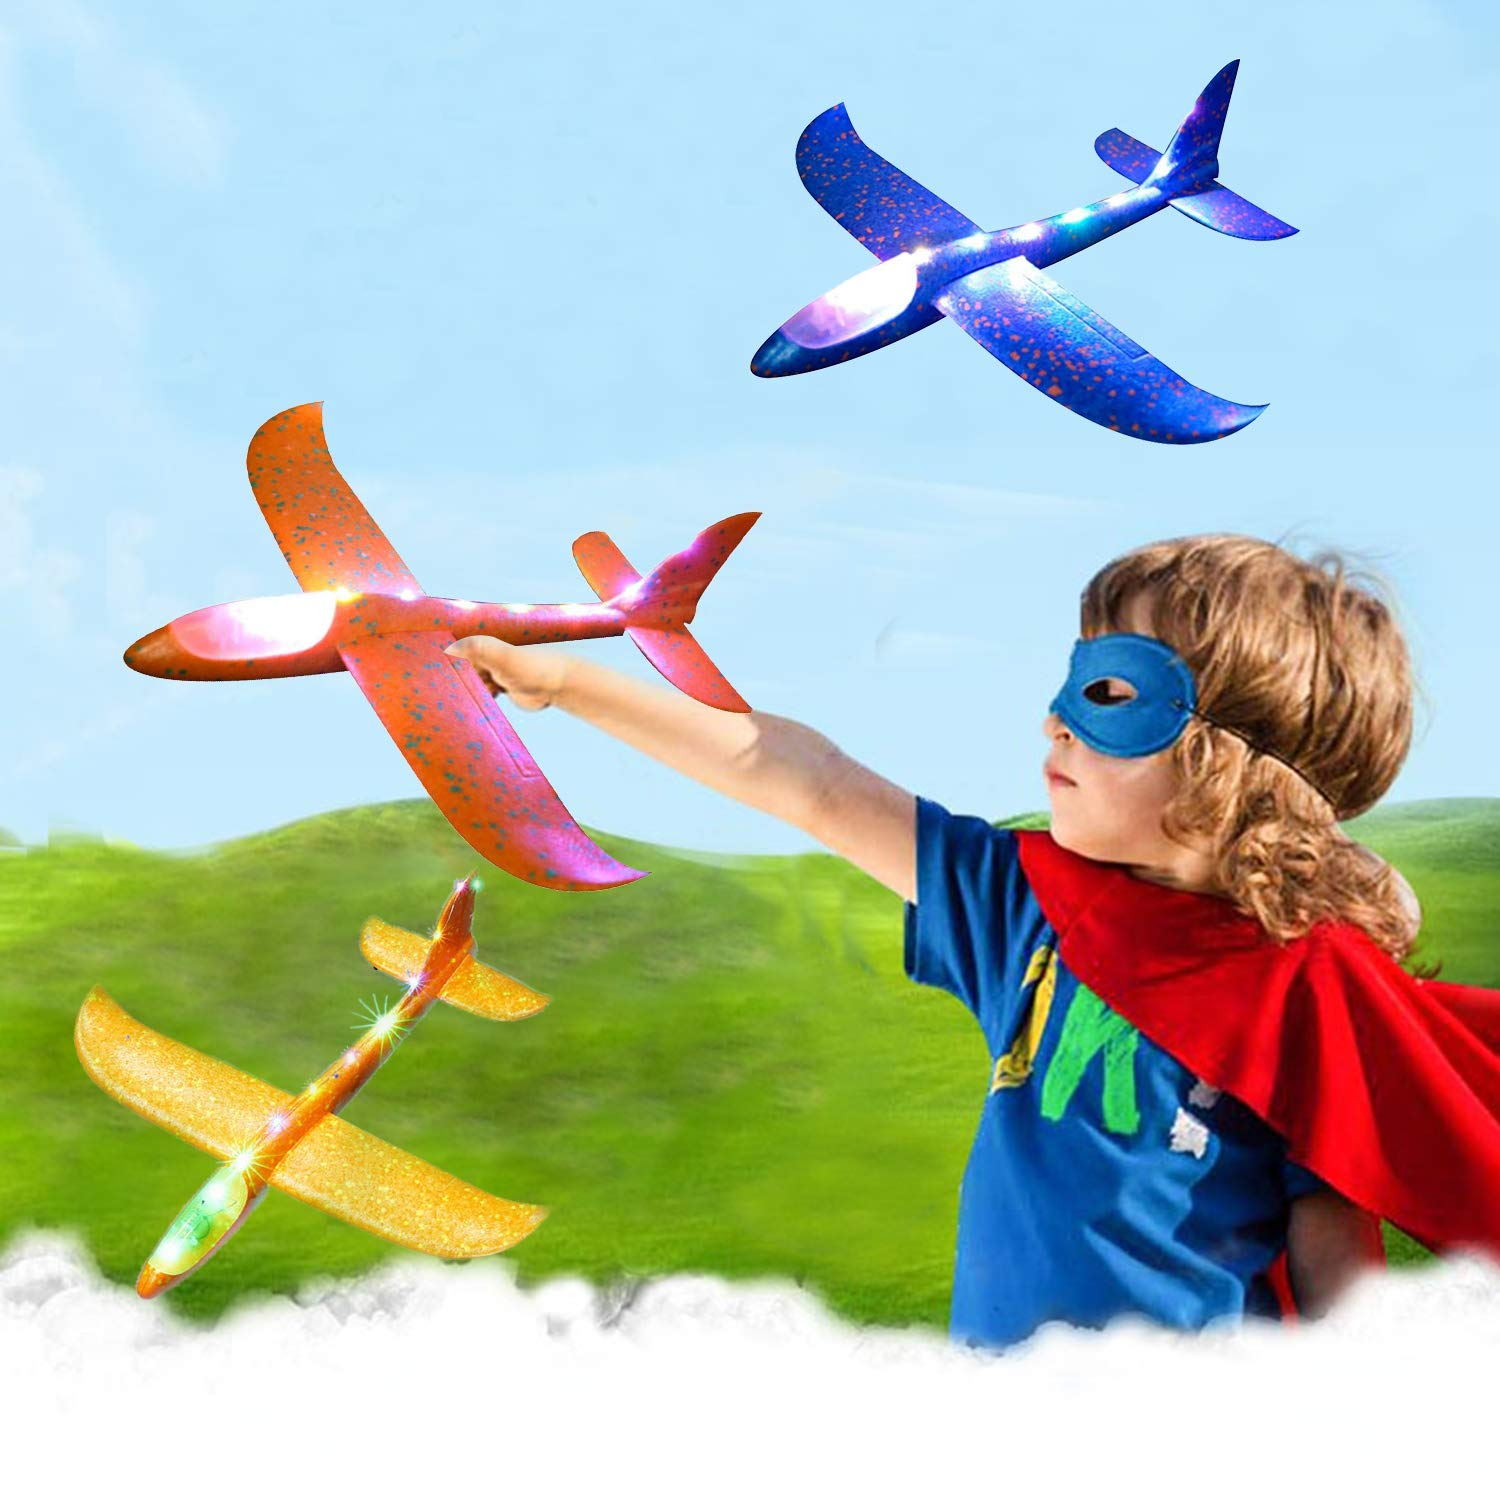 Airplane Toy for Kids, 3 Pack 13.5'' LED Light Up Throwing Foam Airplane Flying Aircraft Plane DIY Glider Aeroplane Model Jet Kit Flying Toys for Boys Girls Teens, Outdoor Sport Game Toys Party Favors by GreaSmart (Image #7)